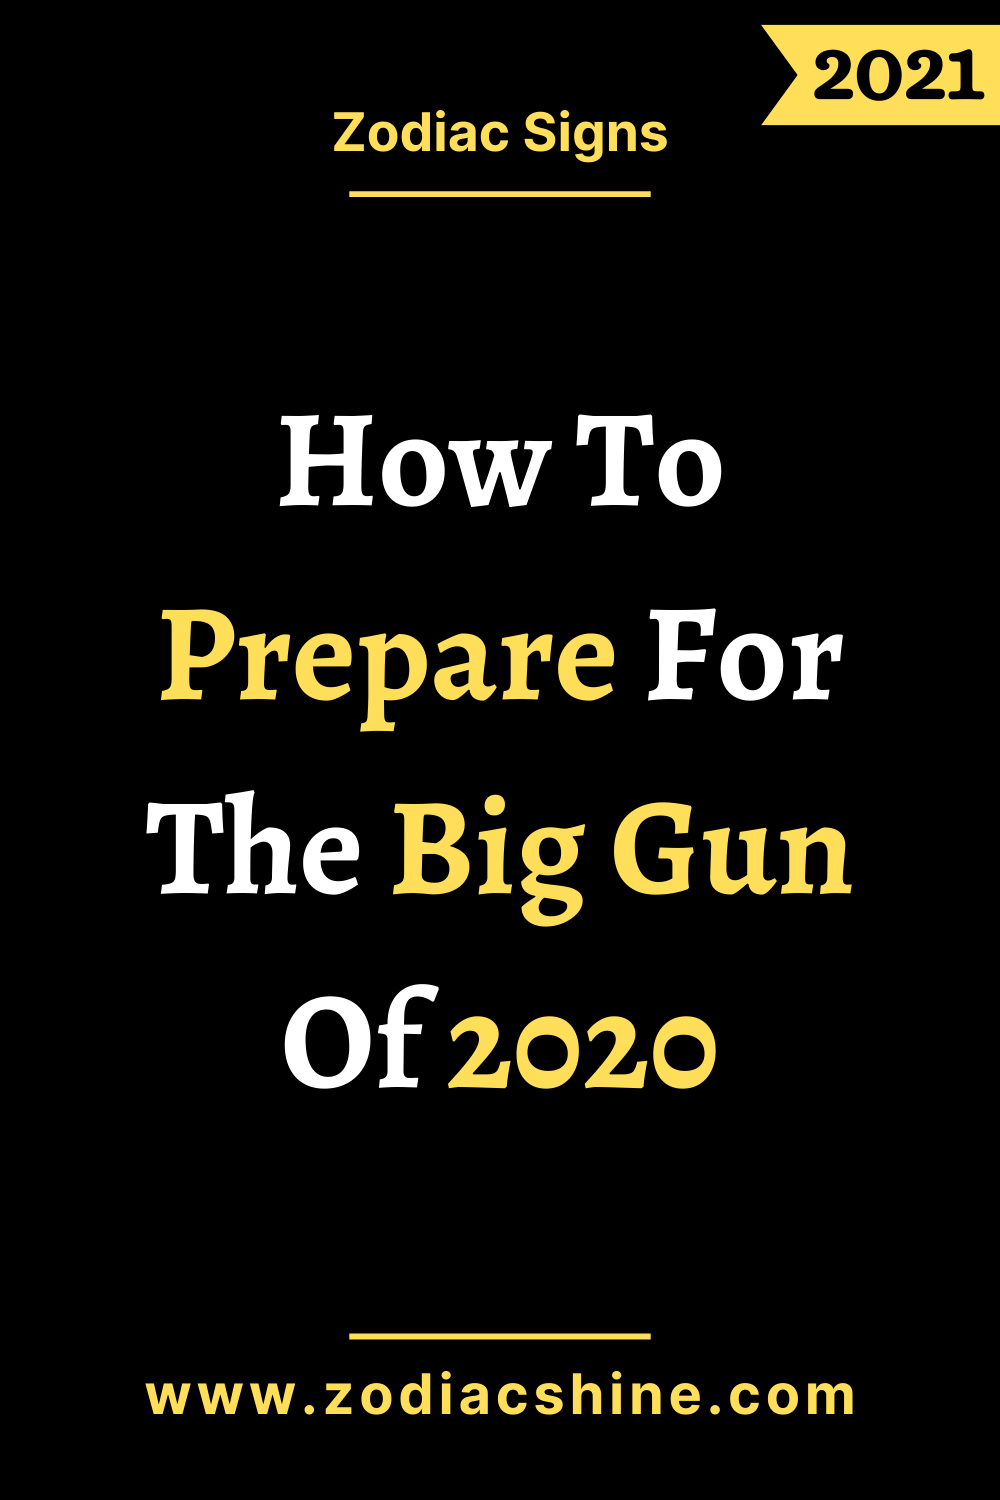 How To Prepare For The Big Gun Of 2020